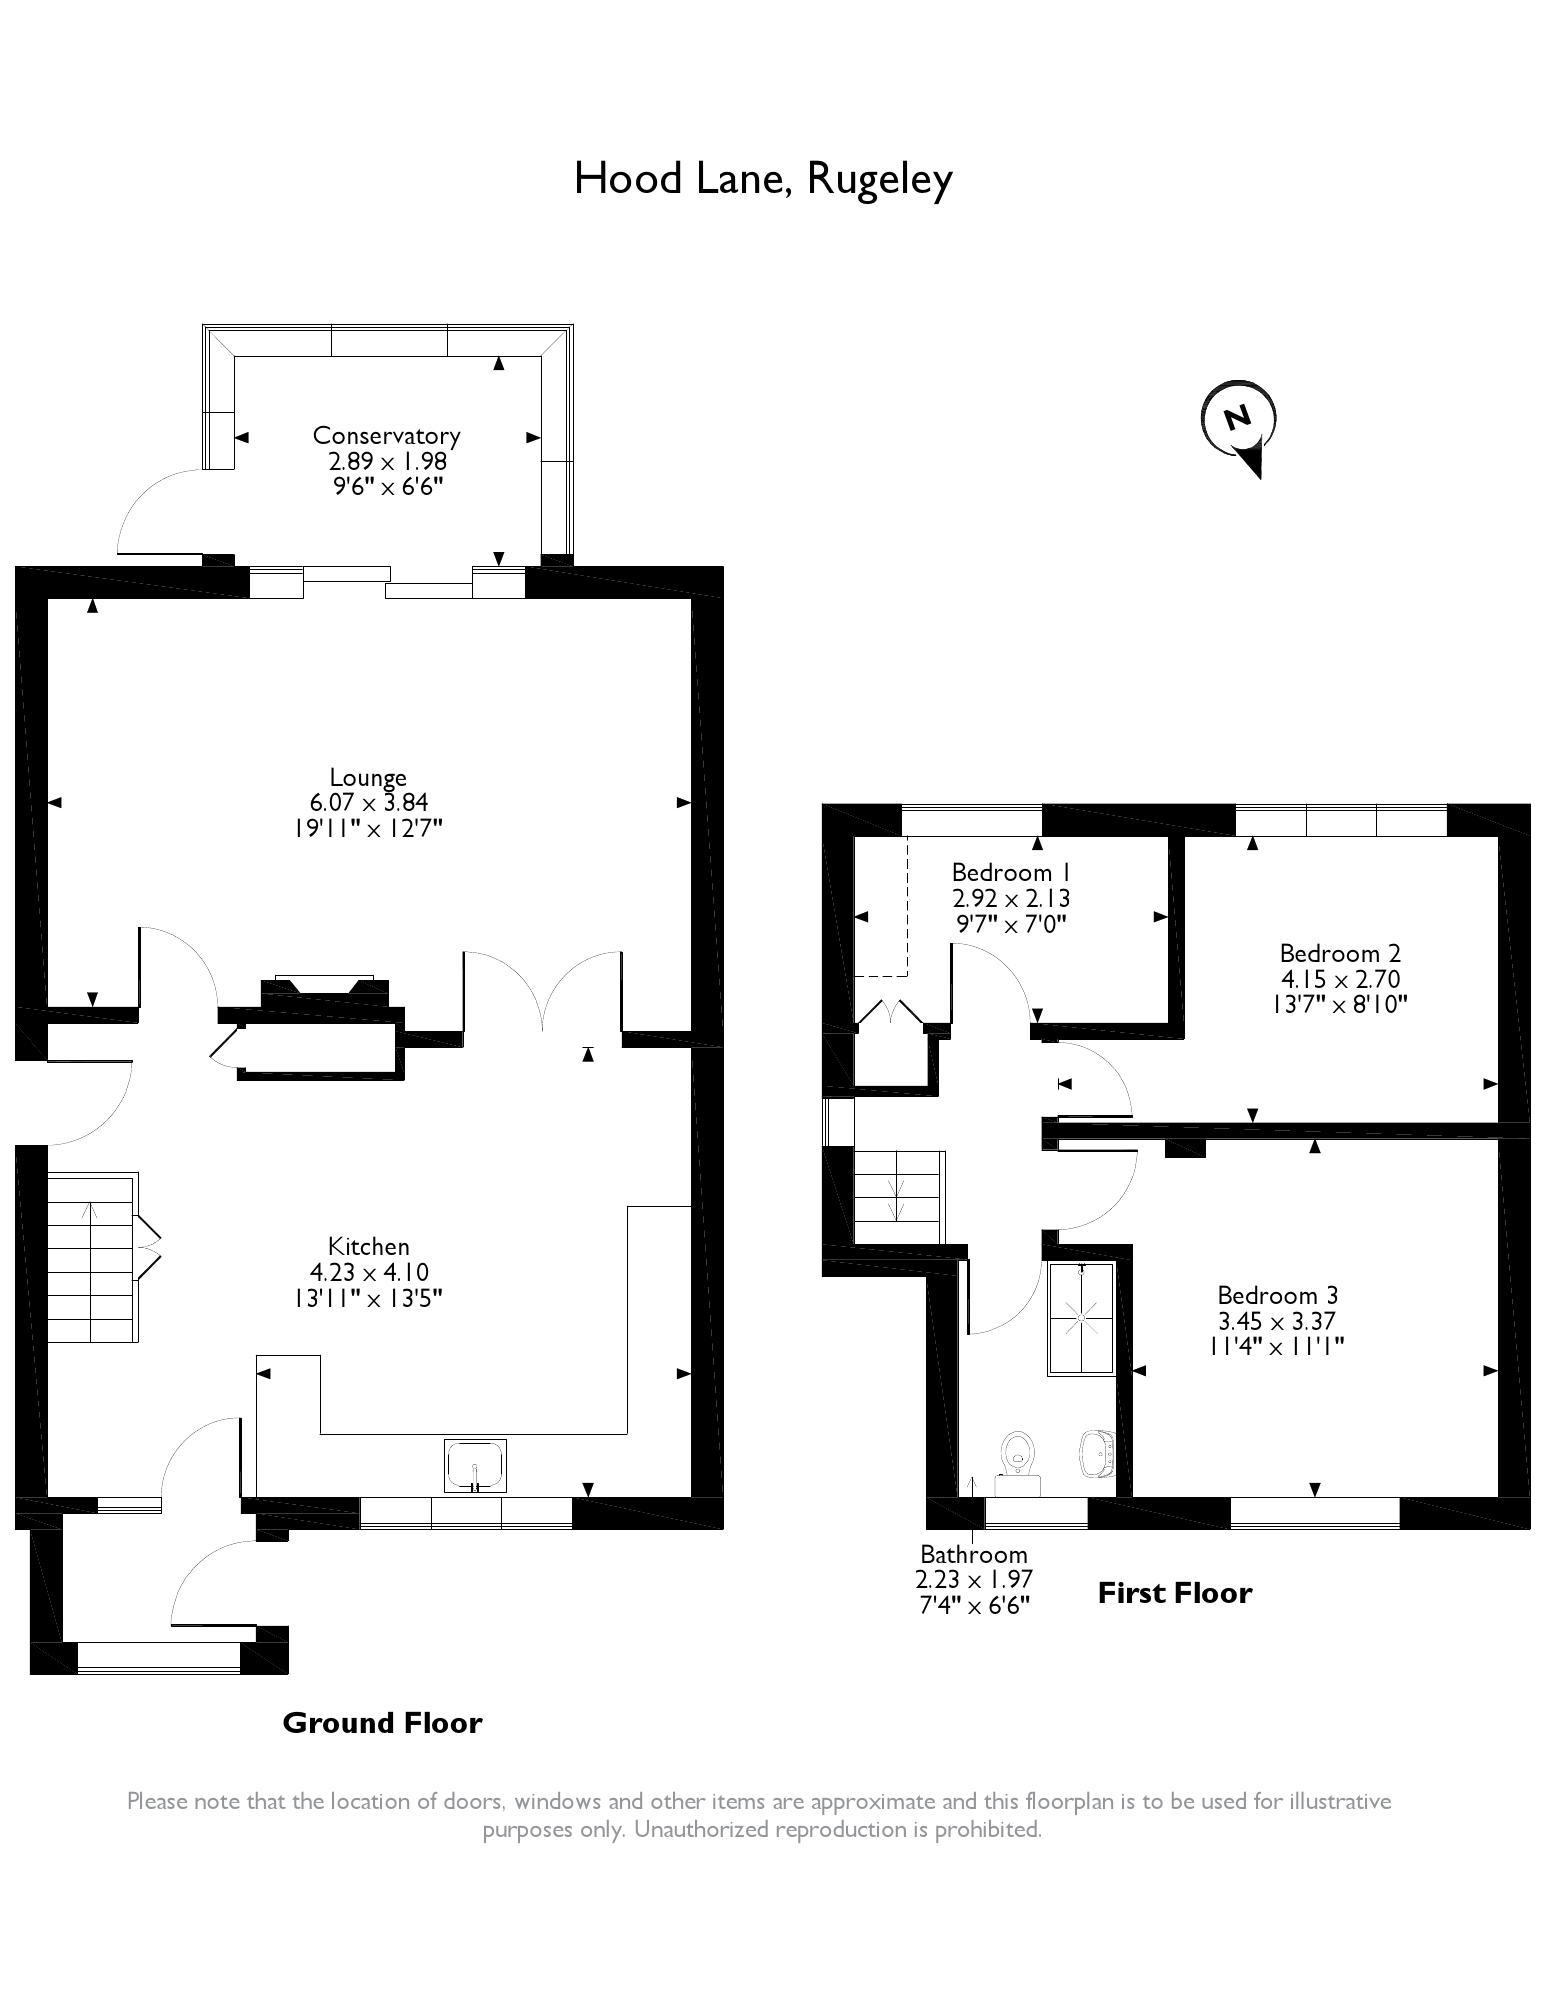 2a Hood Lane, Rugeley, WS15 4BW floor plan